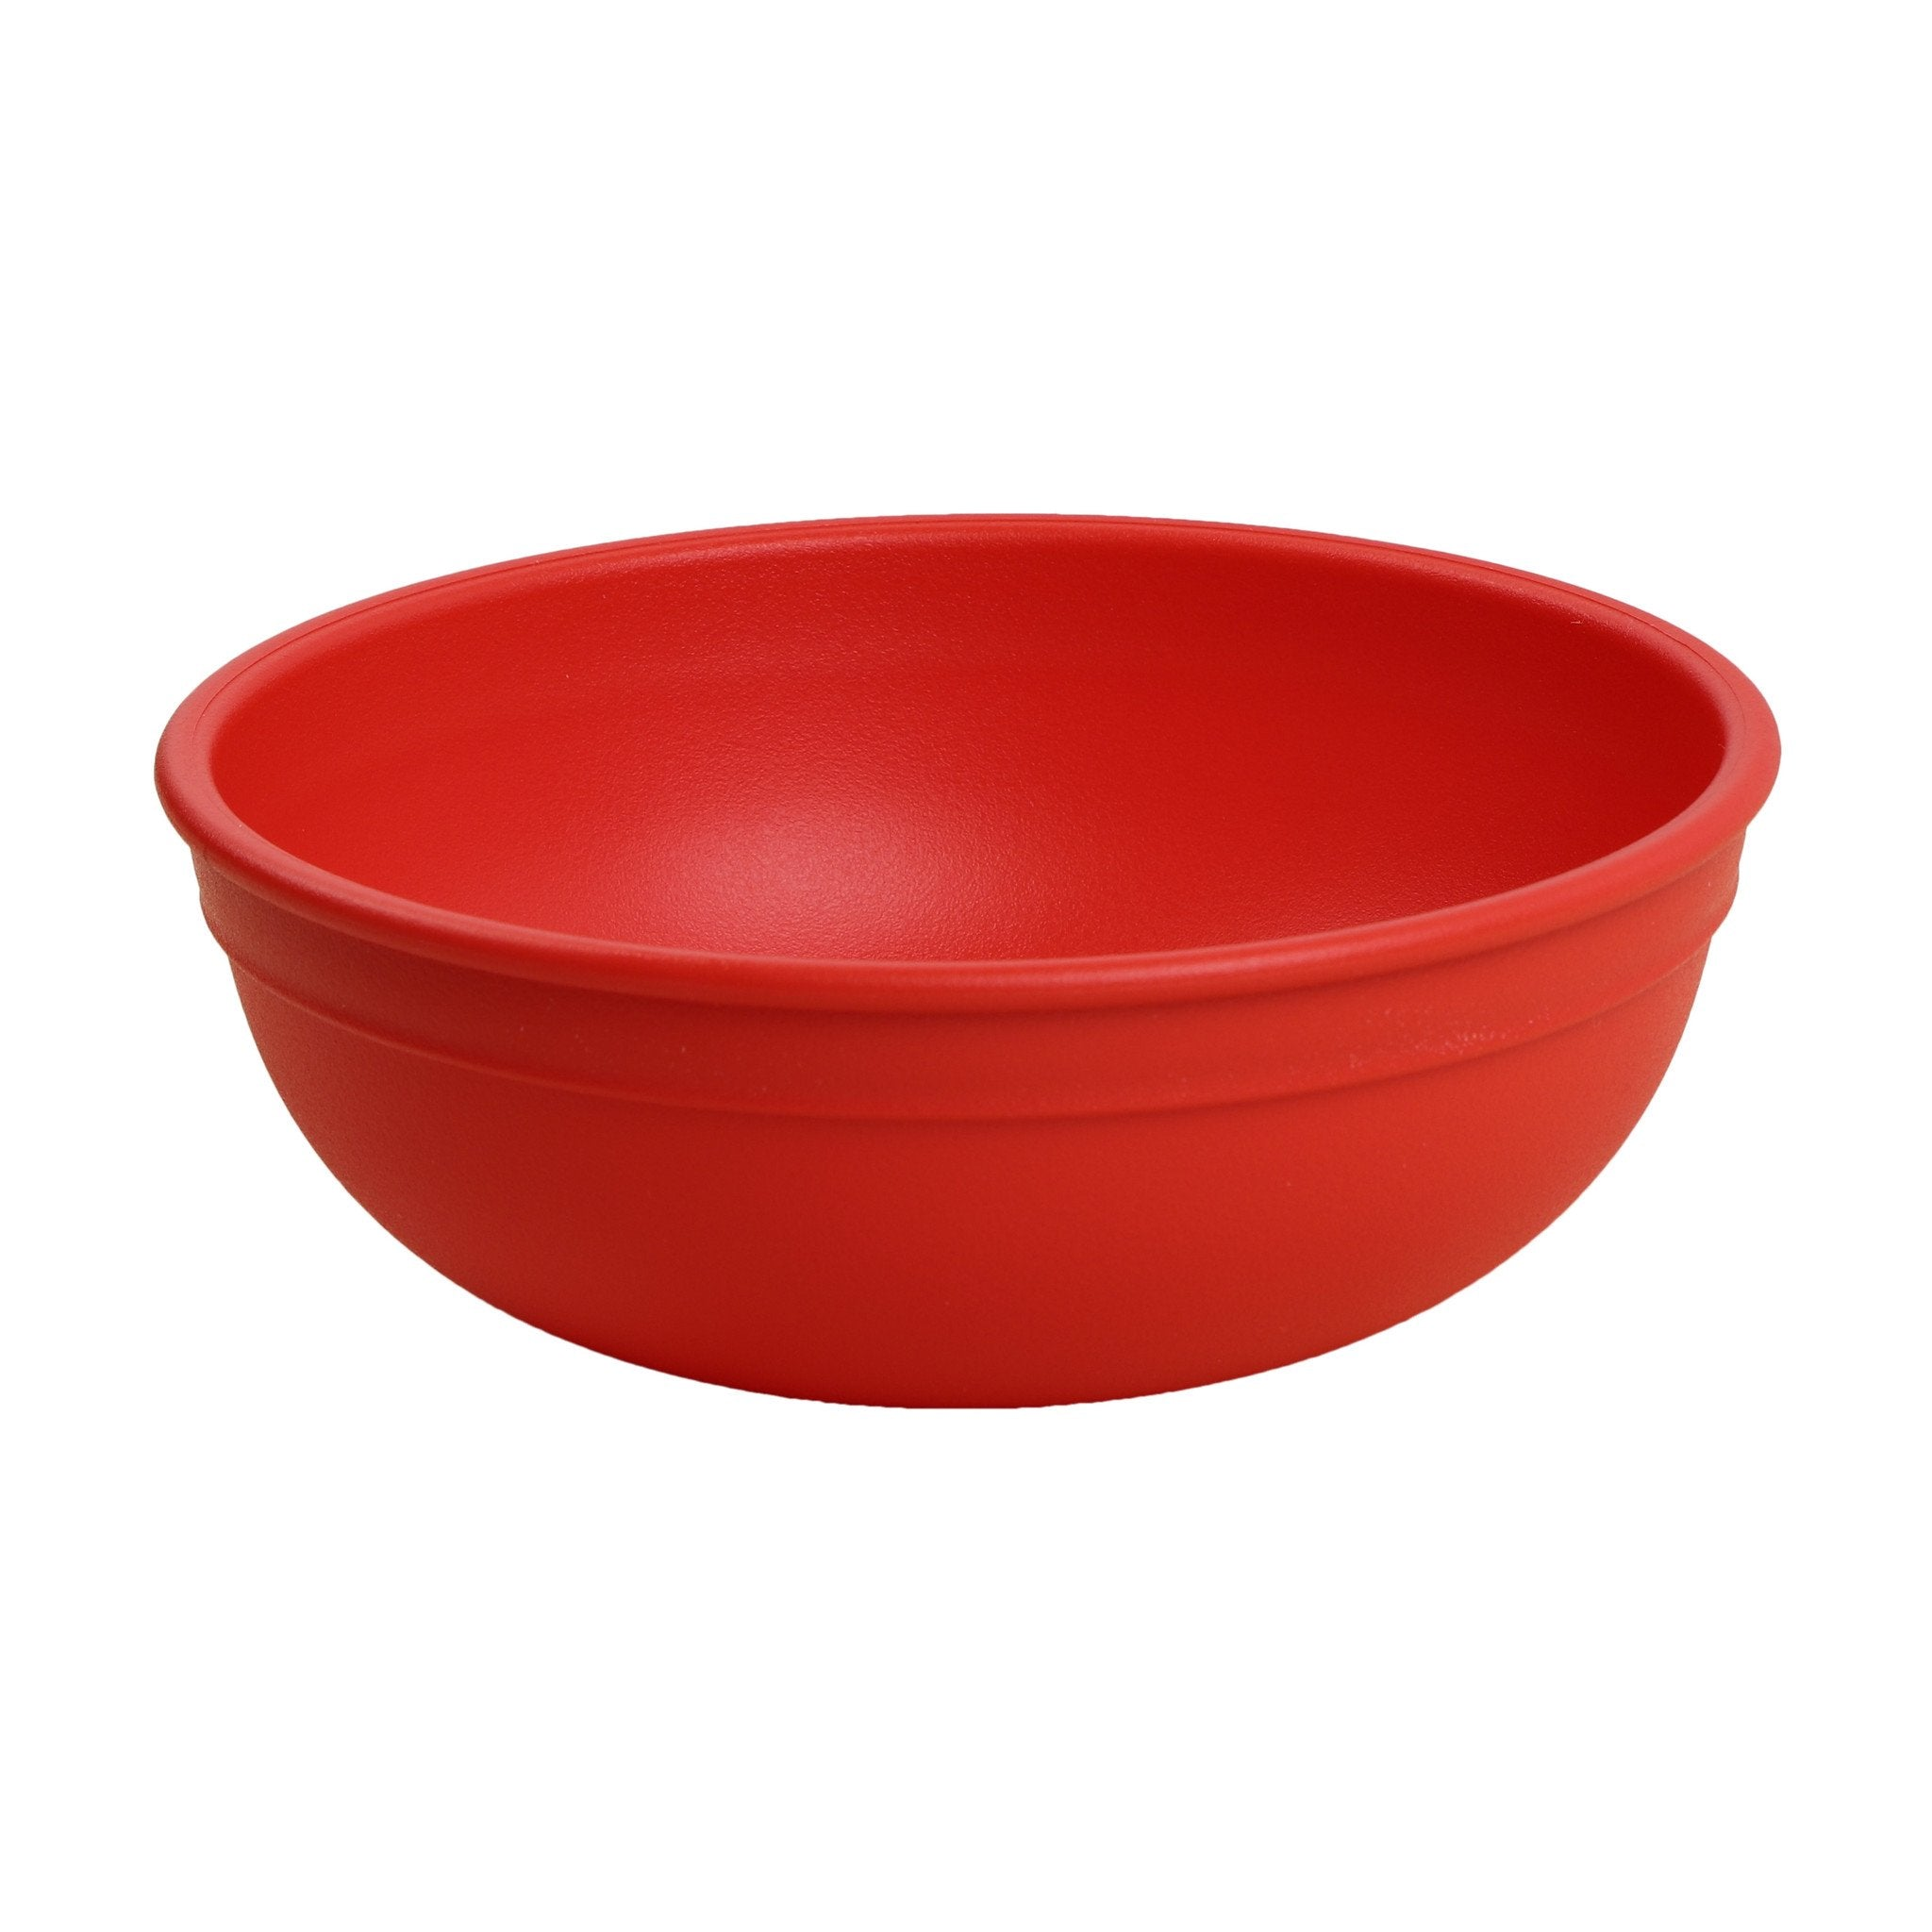 Replay Large Bowl Replay Dinnerware Red at Little Earth Nest Eco Shop